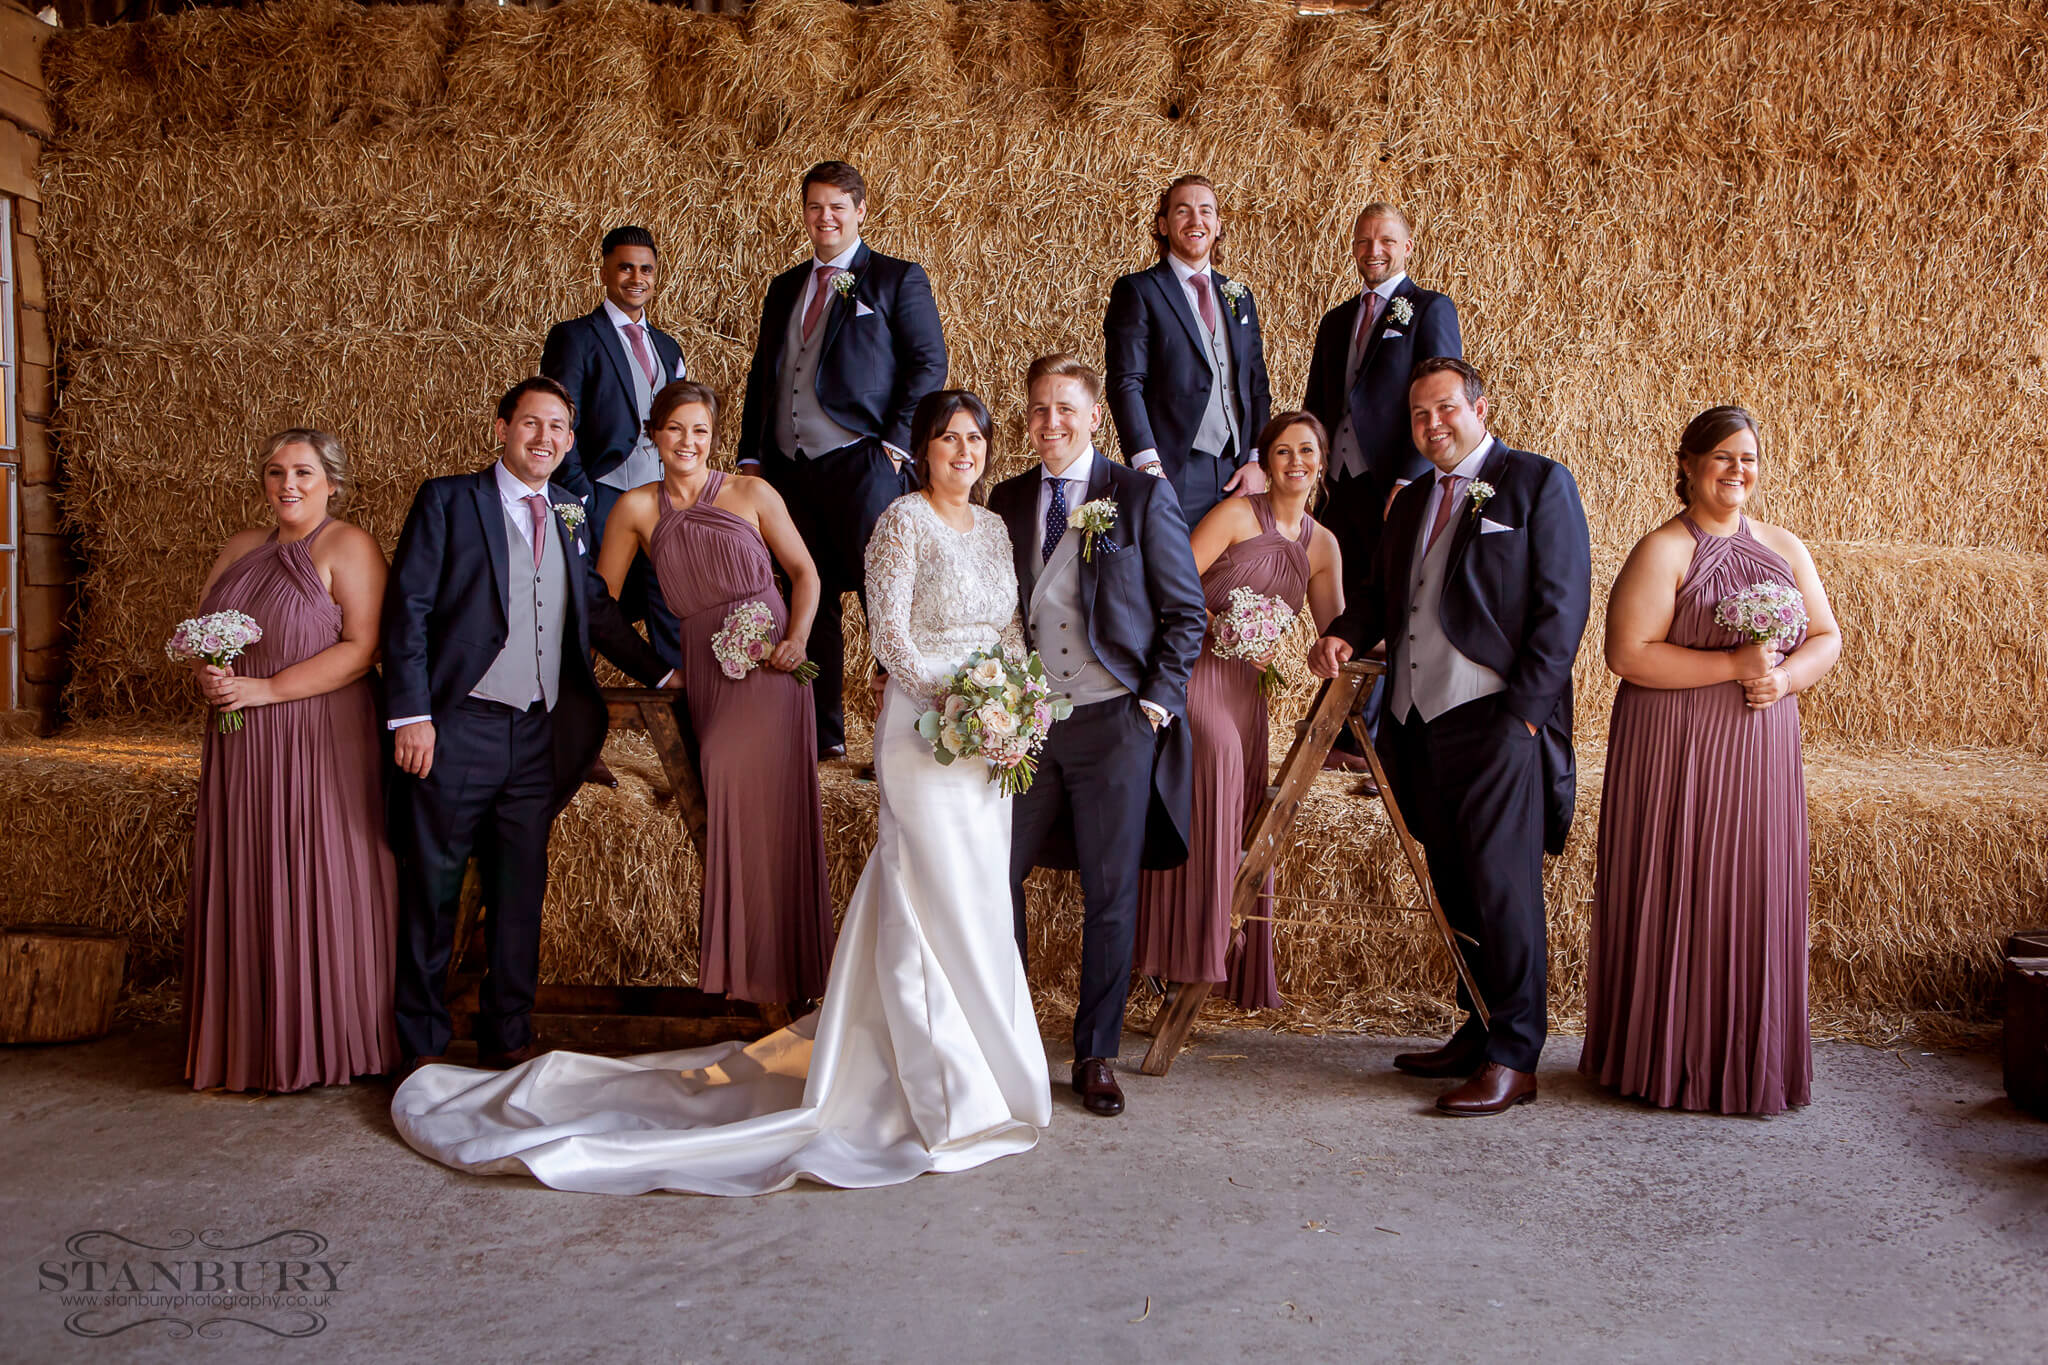 owen-house-wedding-barn-bride-groom-bridesmaids-photography-stanbury